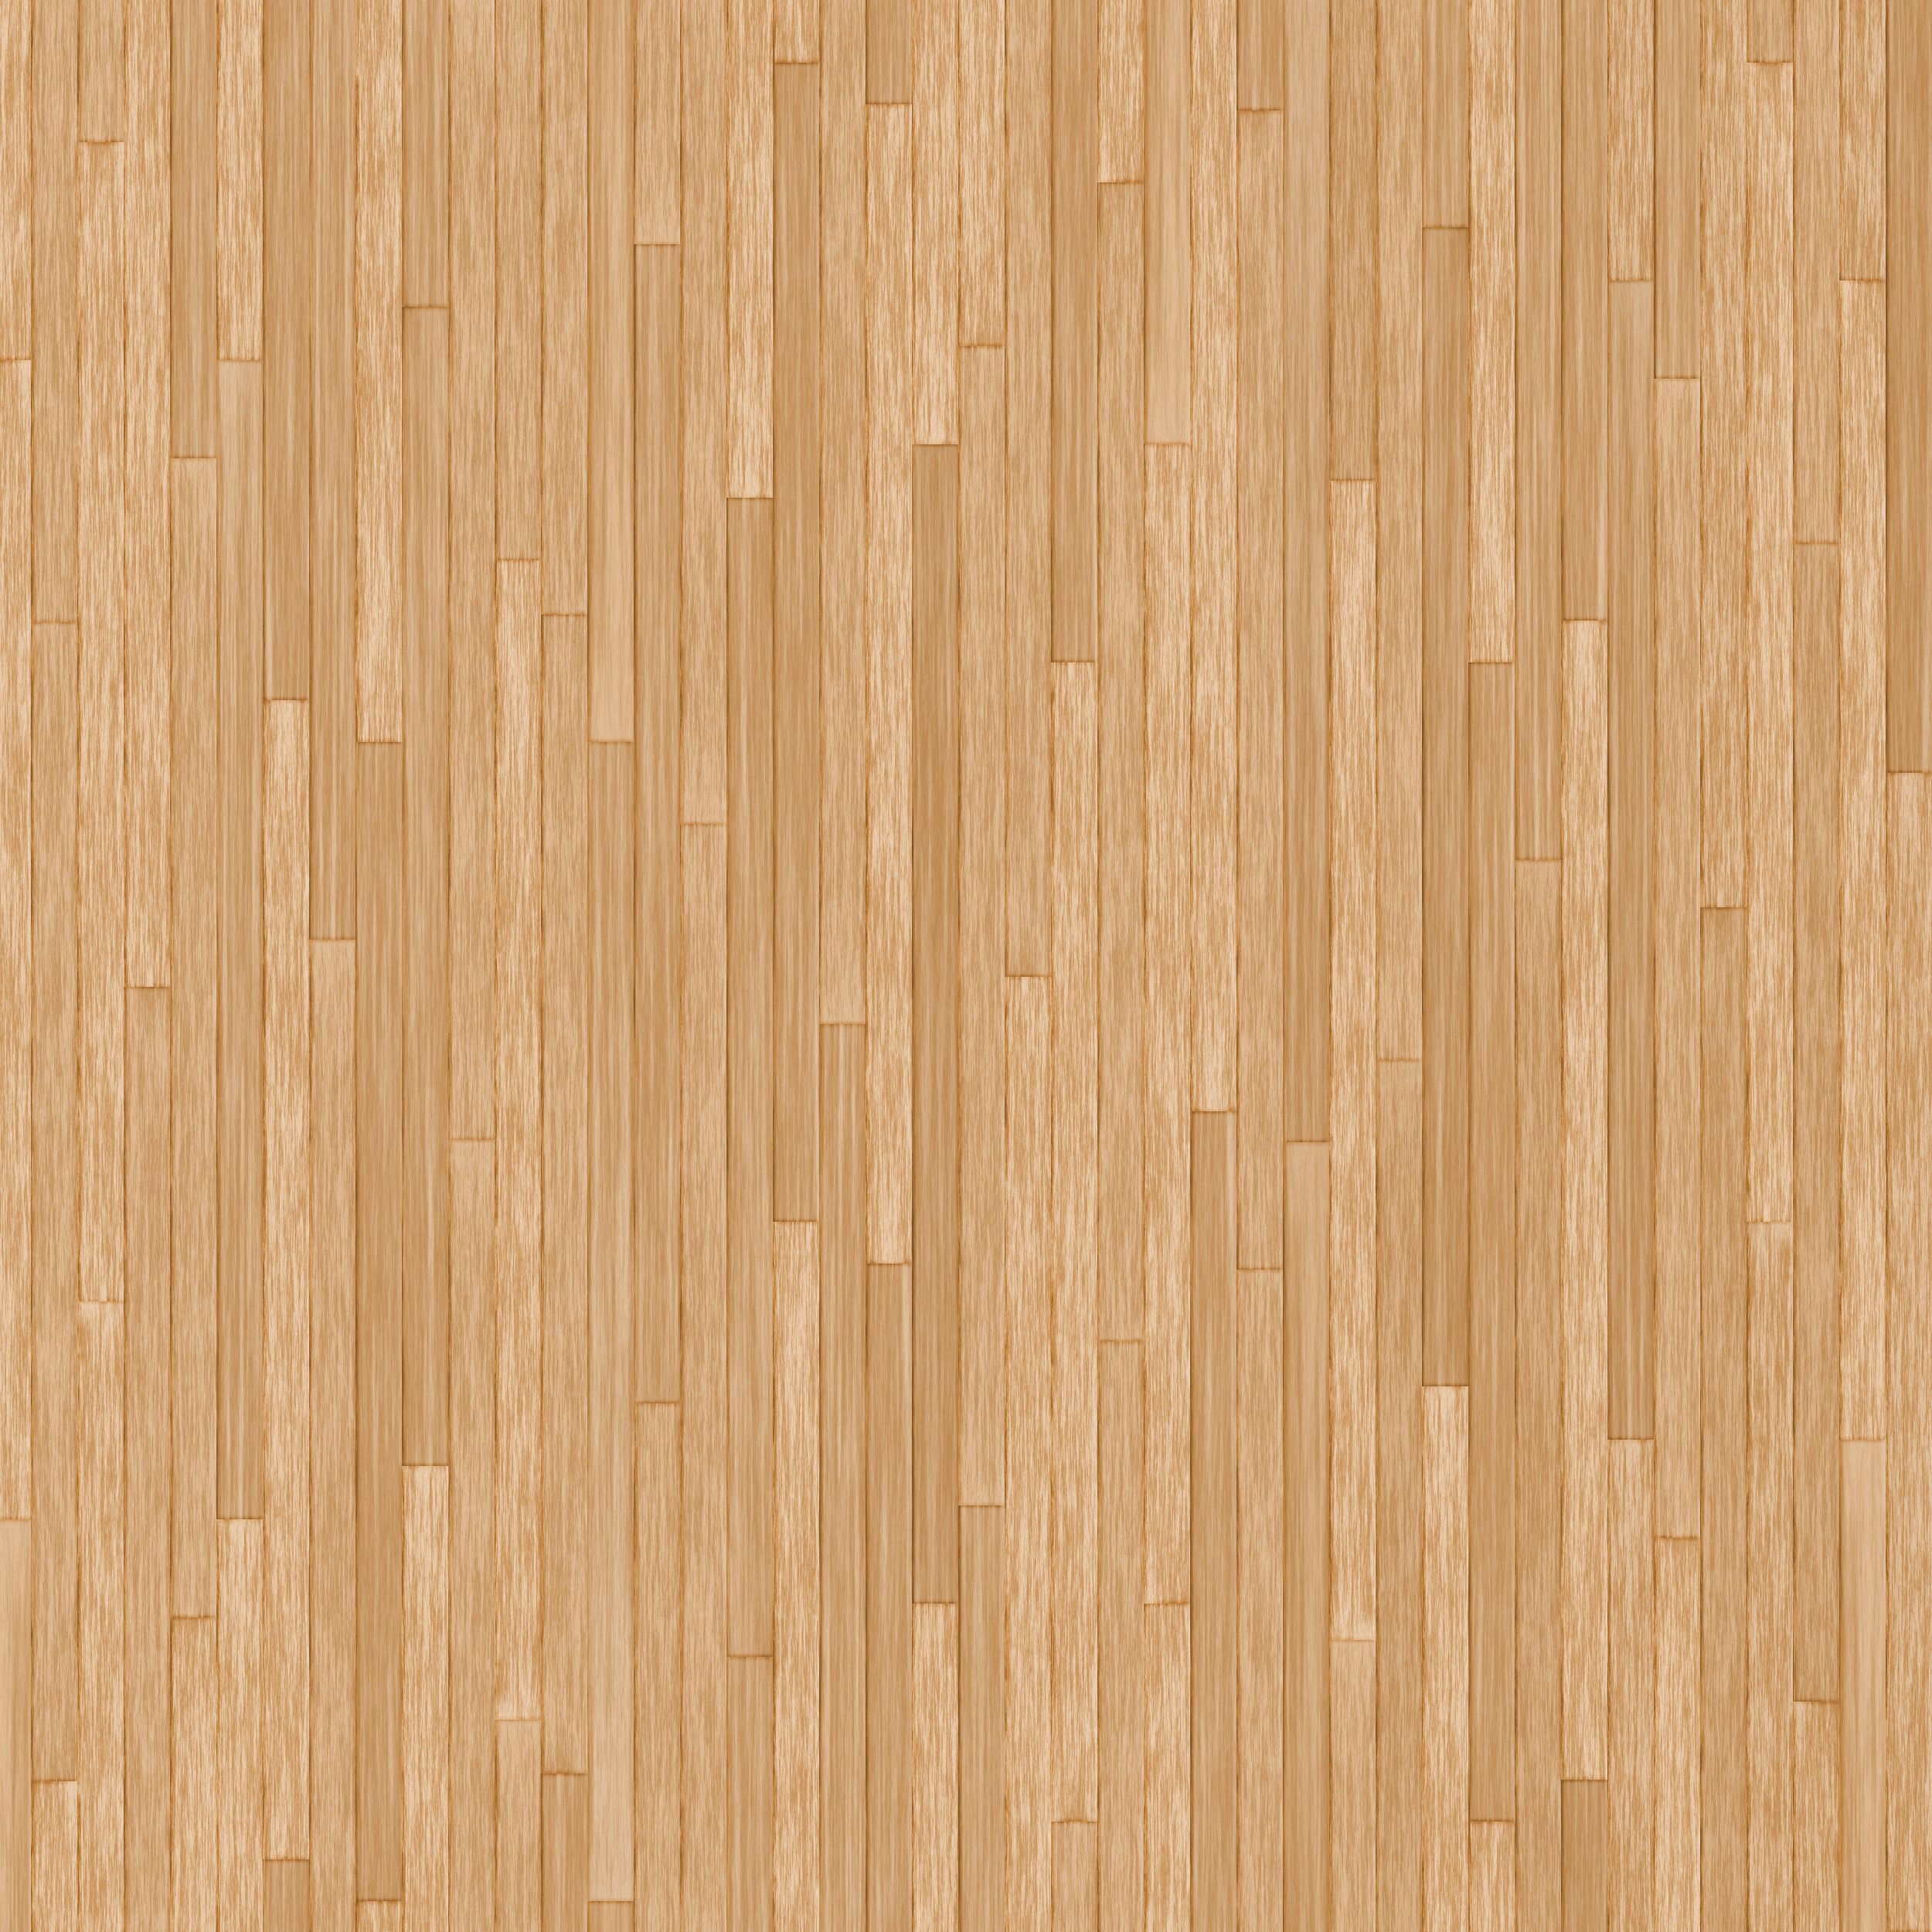 Wood Deck Texture 시도해 볼 프로젝트 Pinterest Decking And Woods